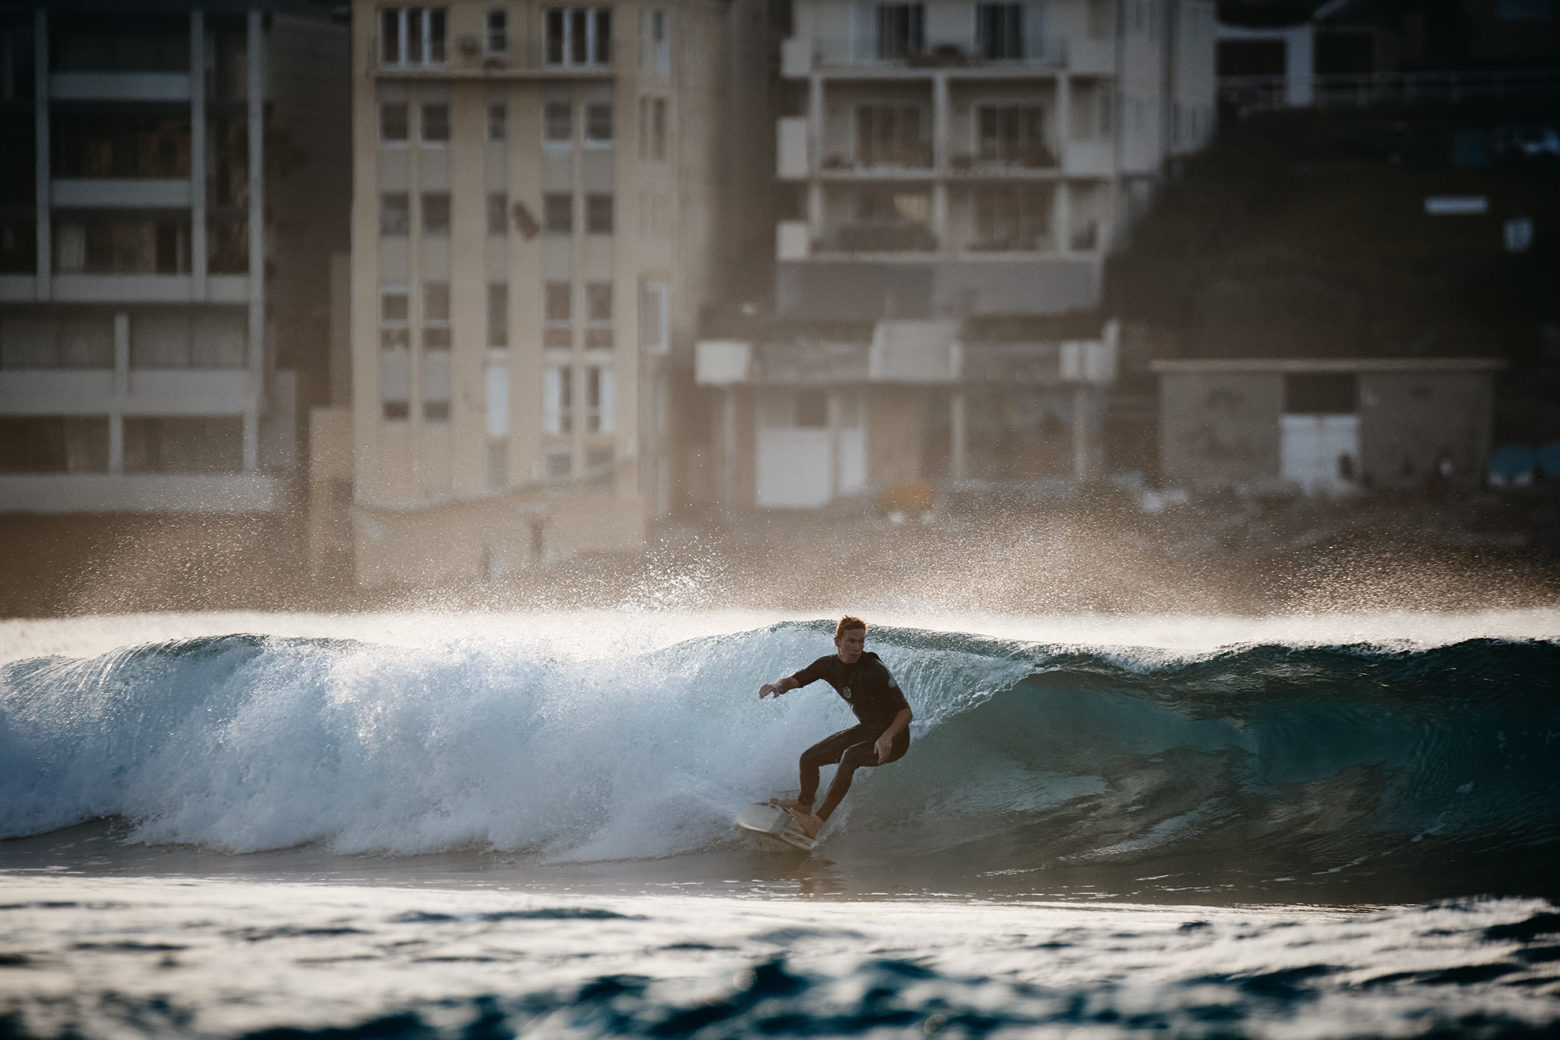 Firing up on a left, Bondi